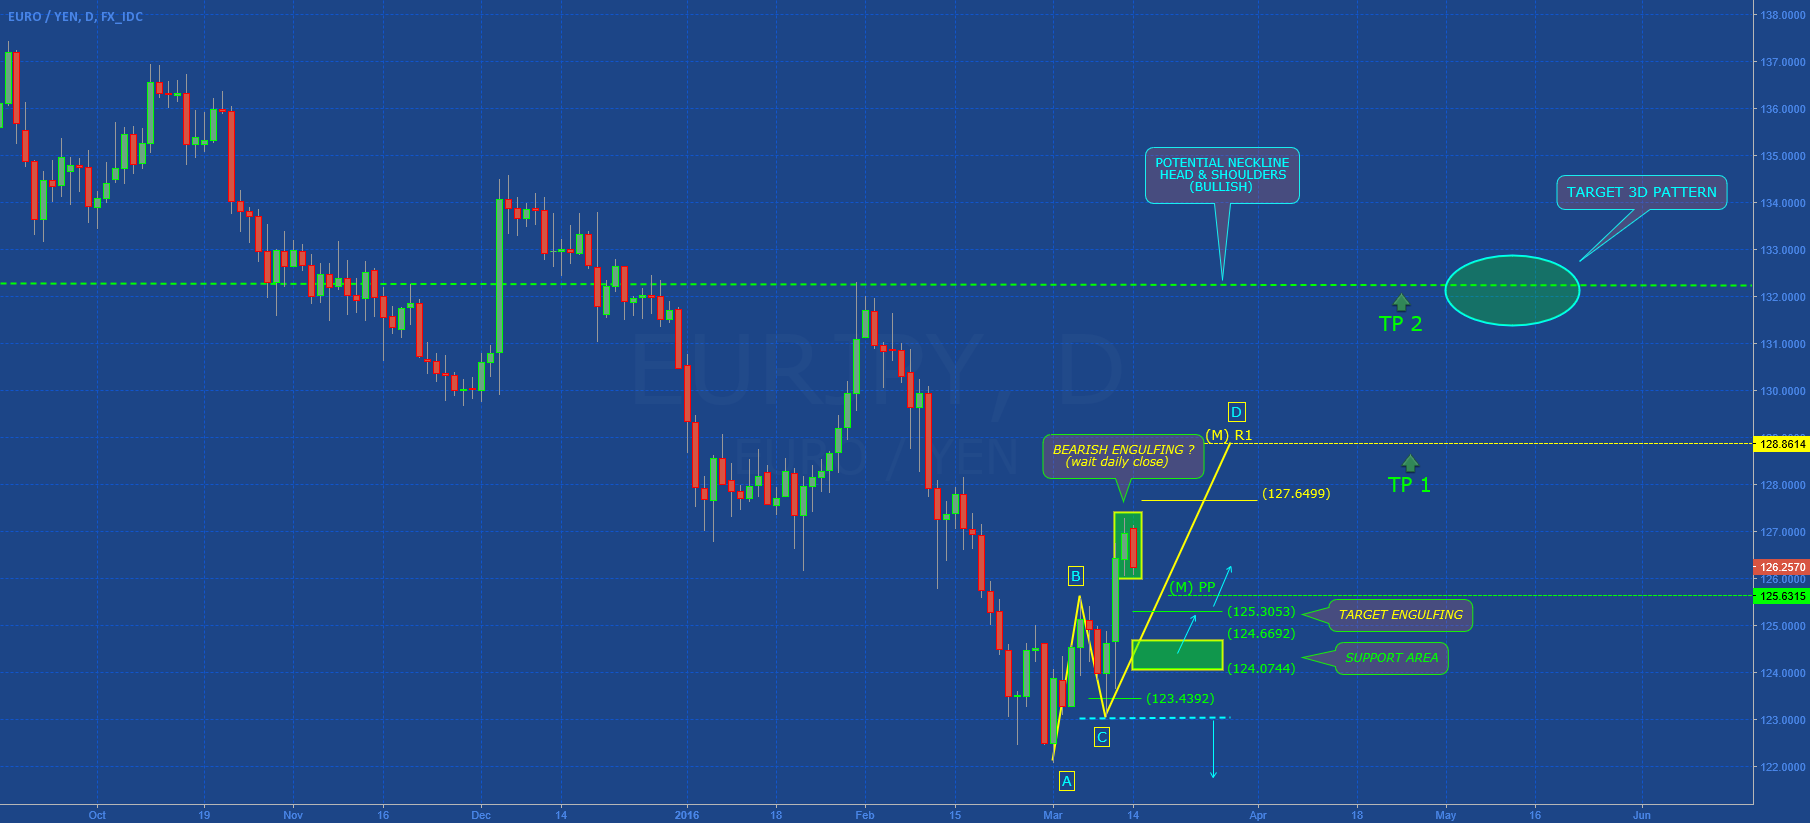 EURJPY: TECHNICAL ANALYSIS (Part II)